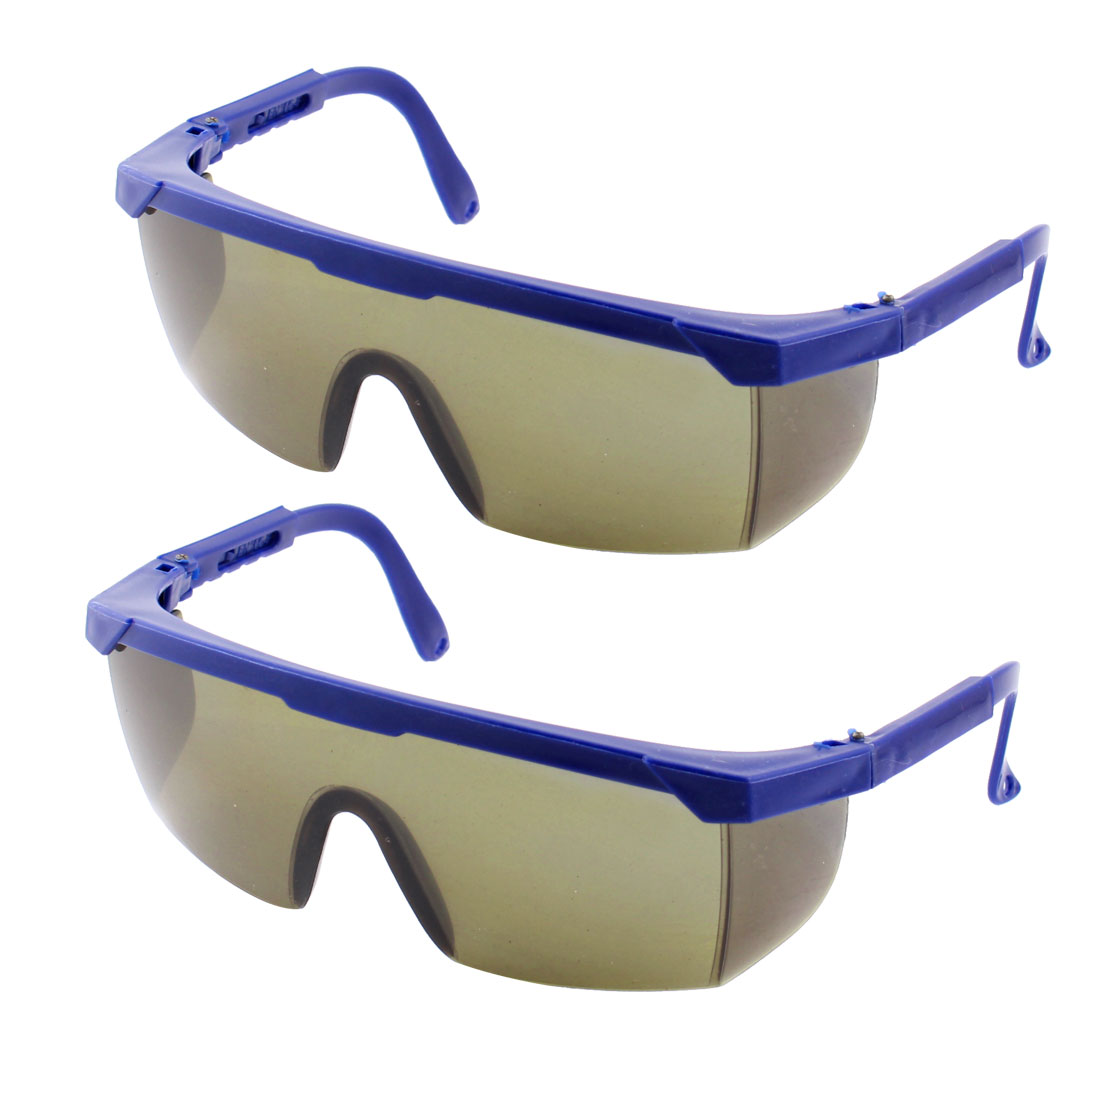 Blue Adjustable Plastic Arms Protective Welding Sunglasses Glasses 2pcs